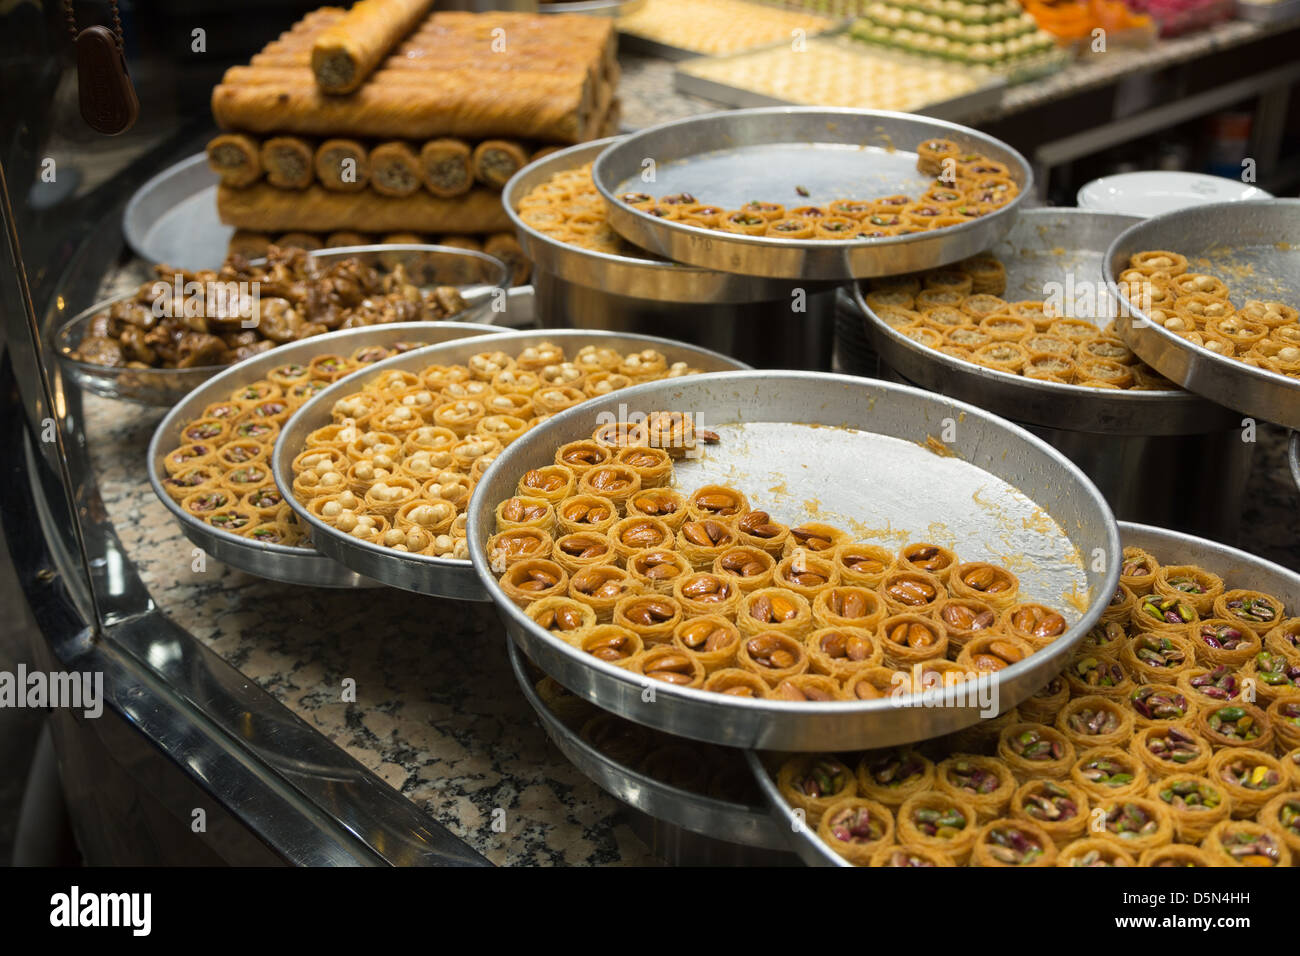 Patisserie in Istanbul, Istanbul, Turkey, Middle East - Stock Image